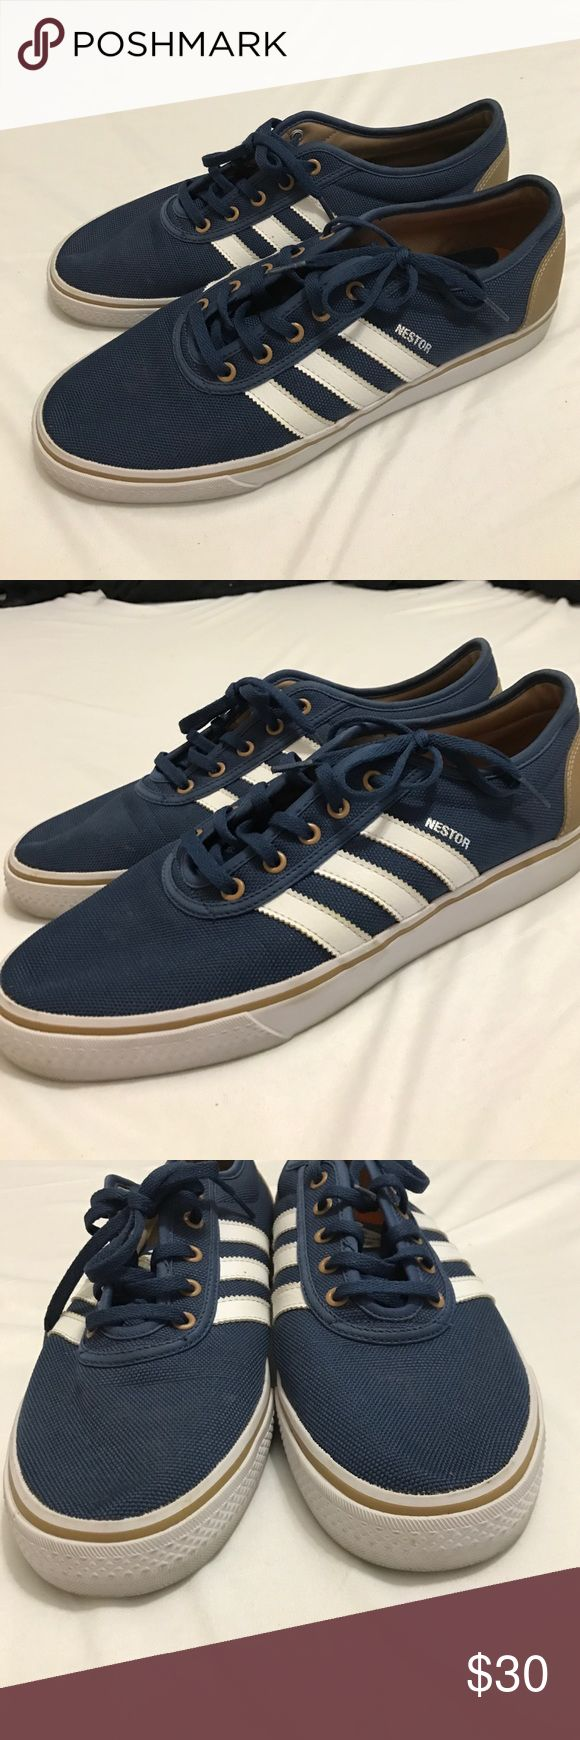 Men's Adidas tennis shoes In great condition  with some wear on the back from jeans (see pics) size 11 Adidas Shoes